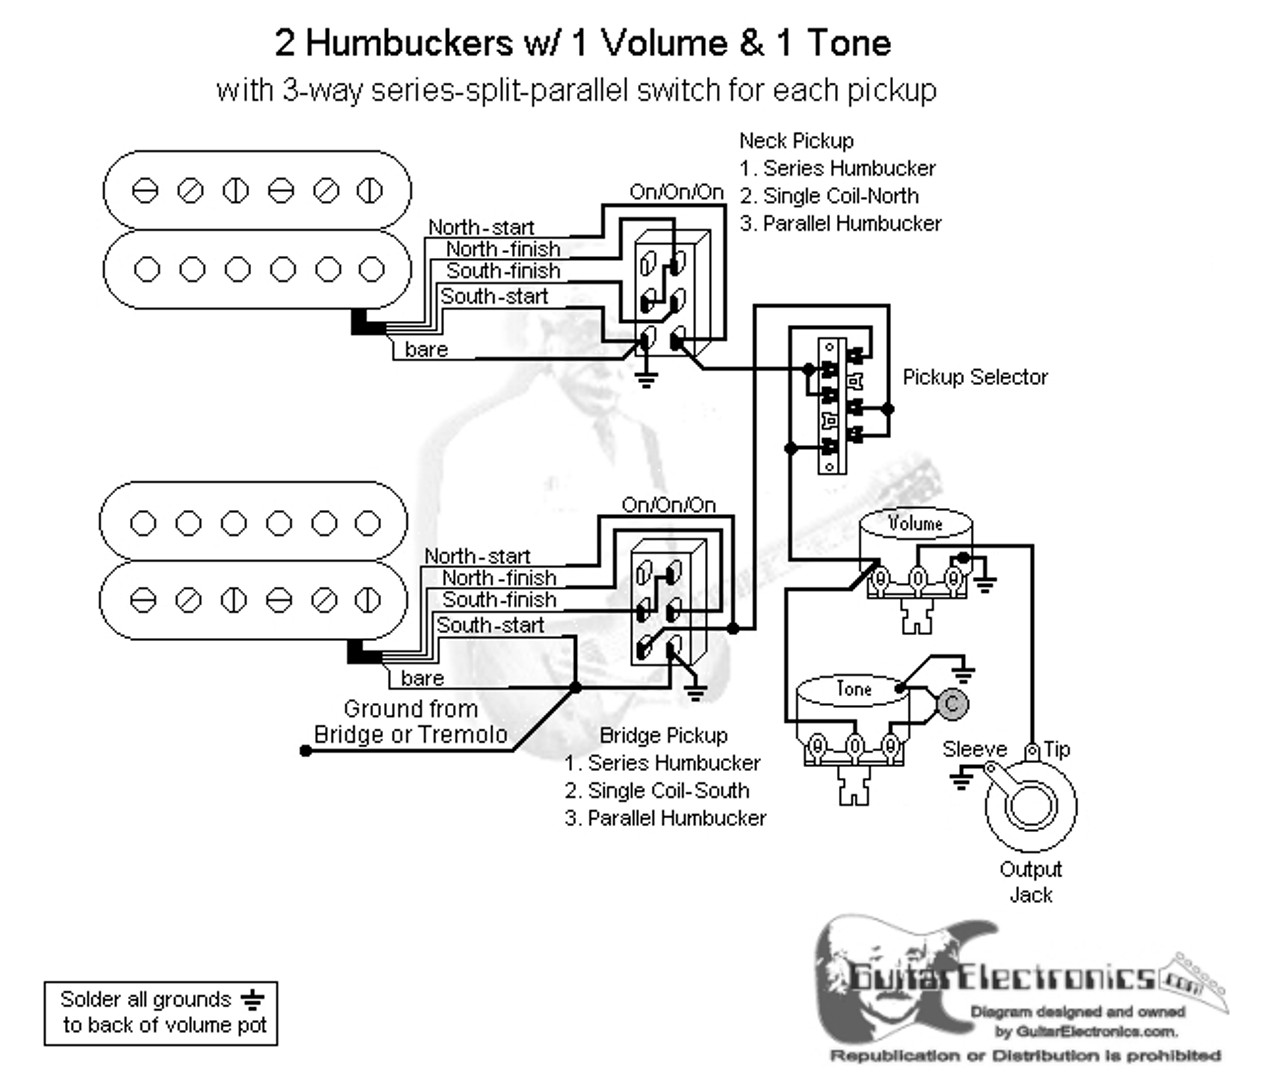 medium resolution of 2 humbuckers 3 way lever switch 1 volume 1 tone series split import strat wiring diagram